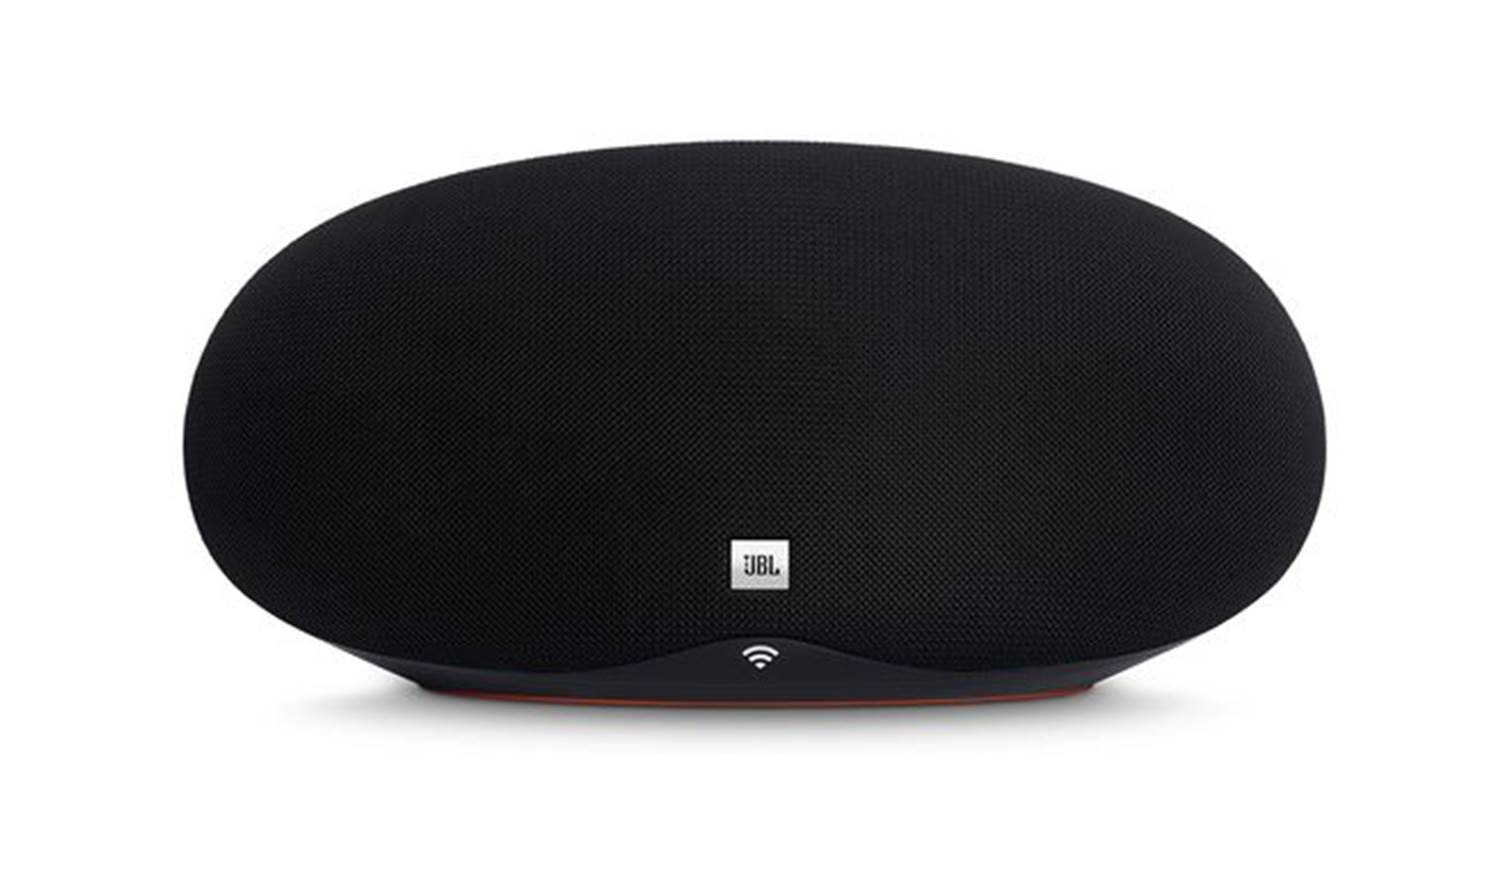 jbl wireless speakers. jbl playlist wireless speaker - black jbl speakers